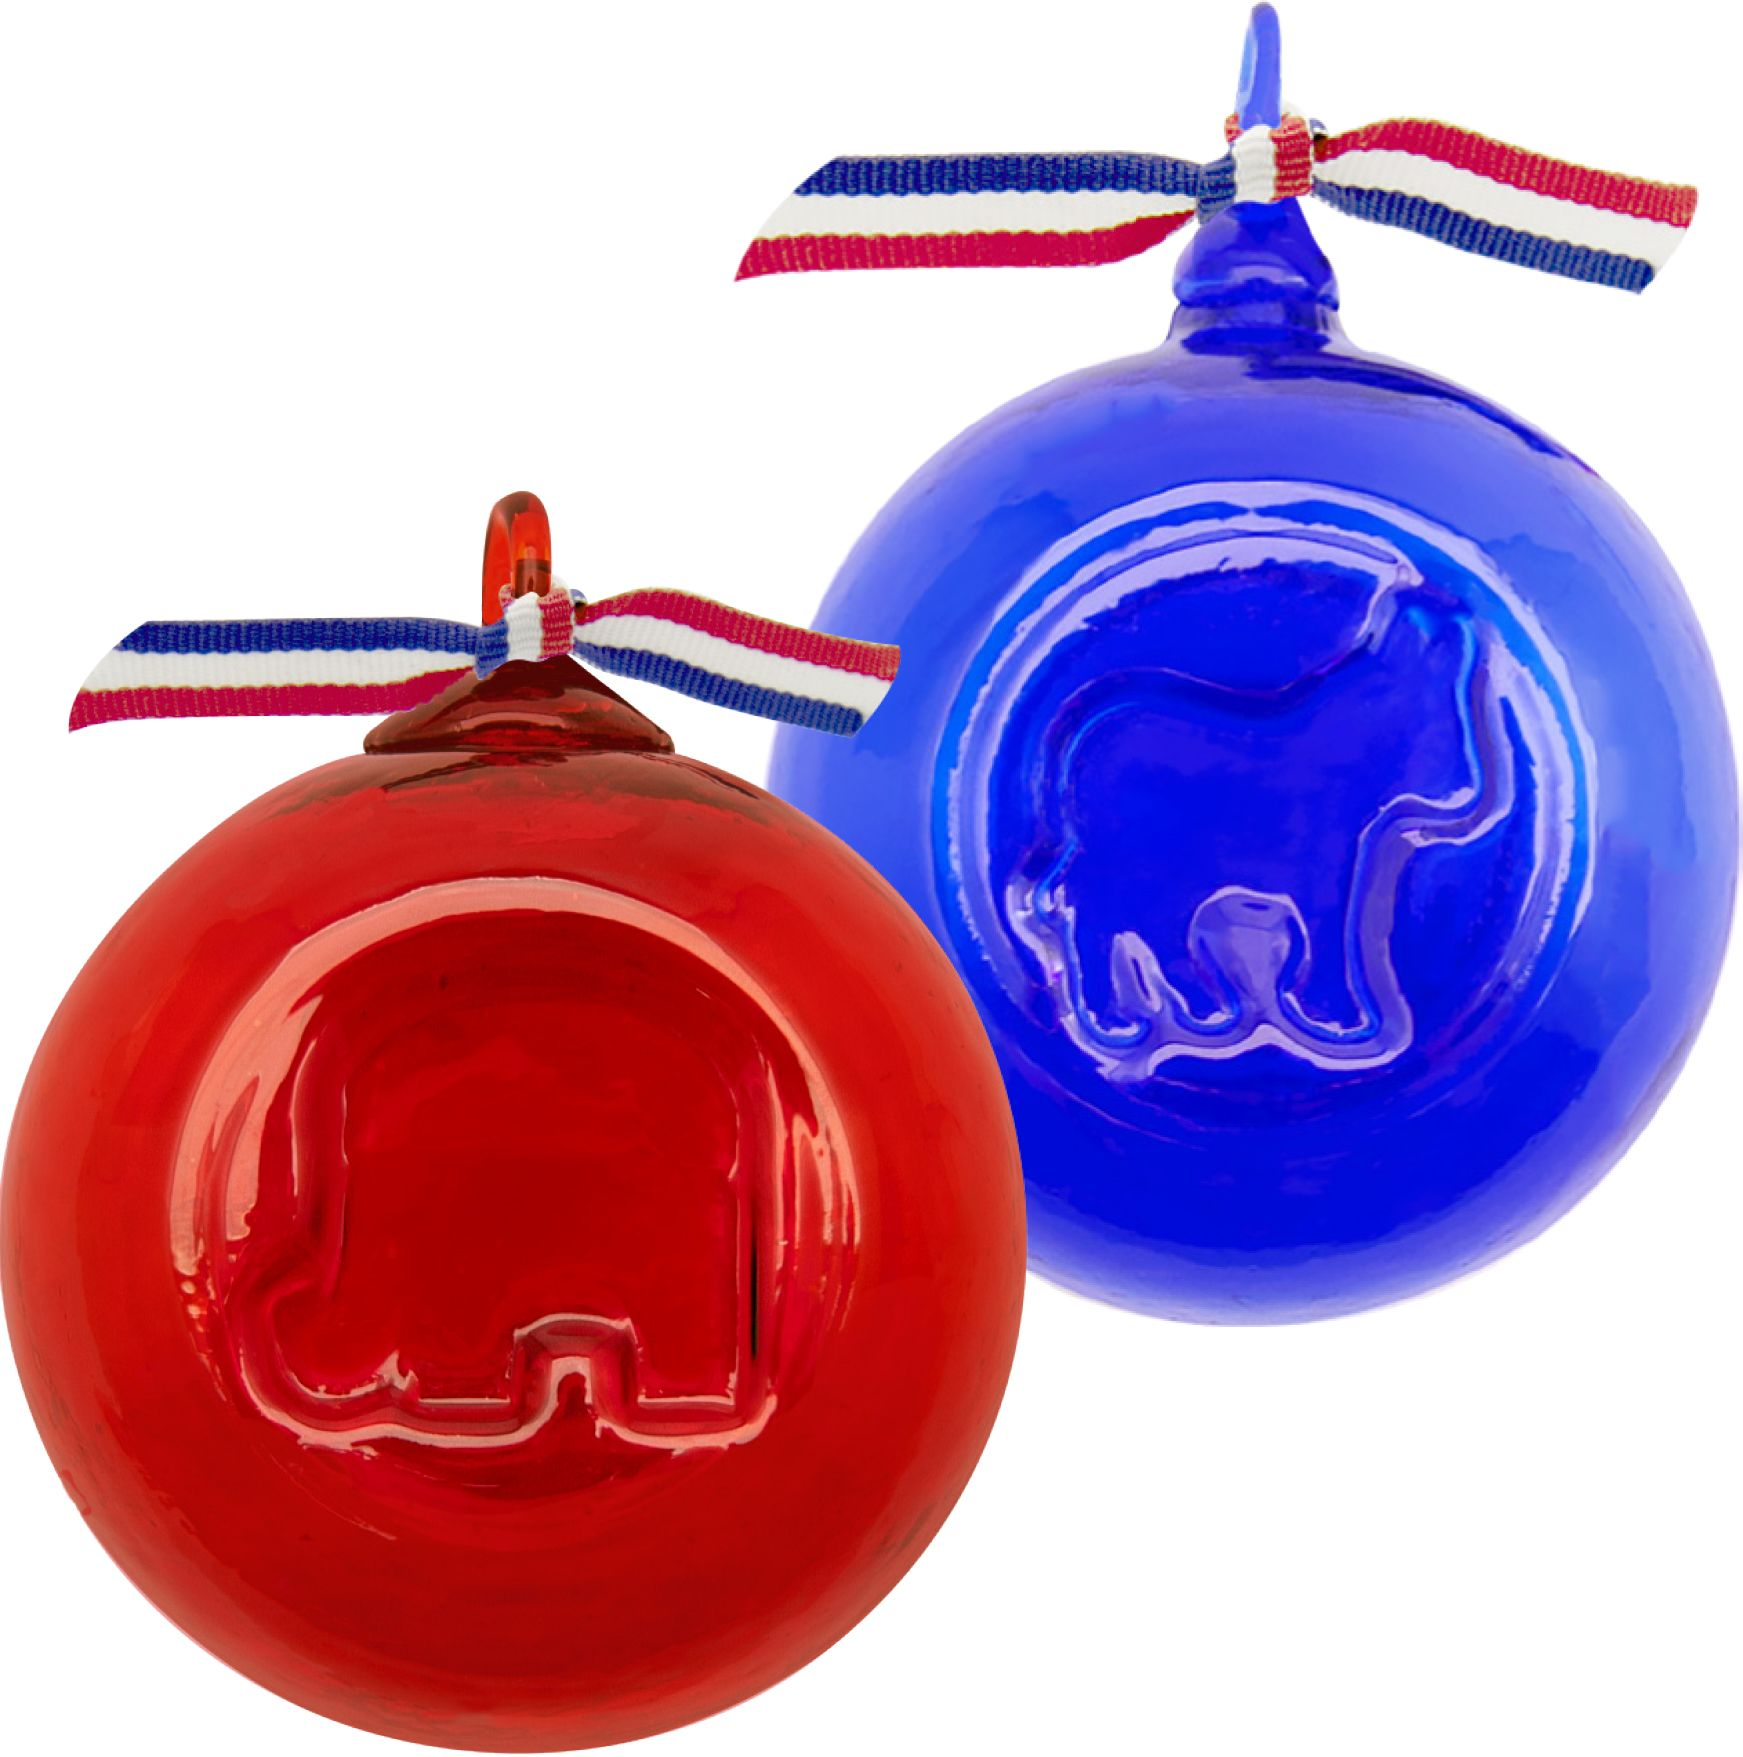 Donkey ornaments - New And Just In Time For This Election Year Political Elephant And Donkey Ornaments